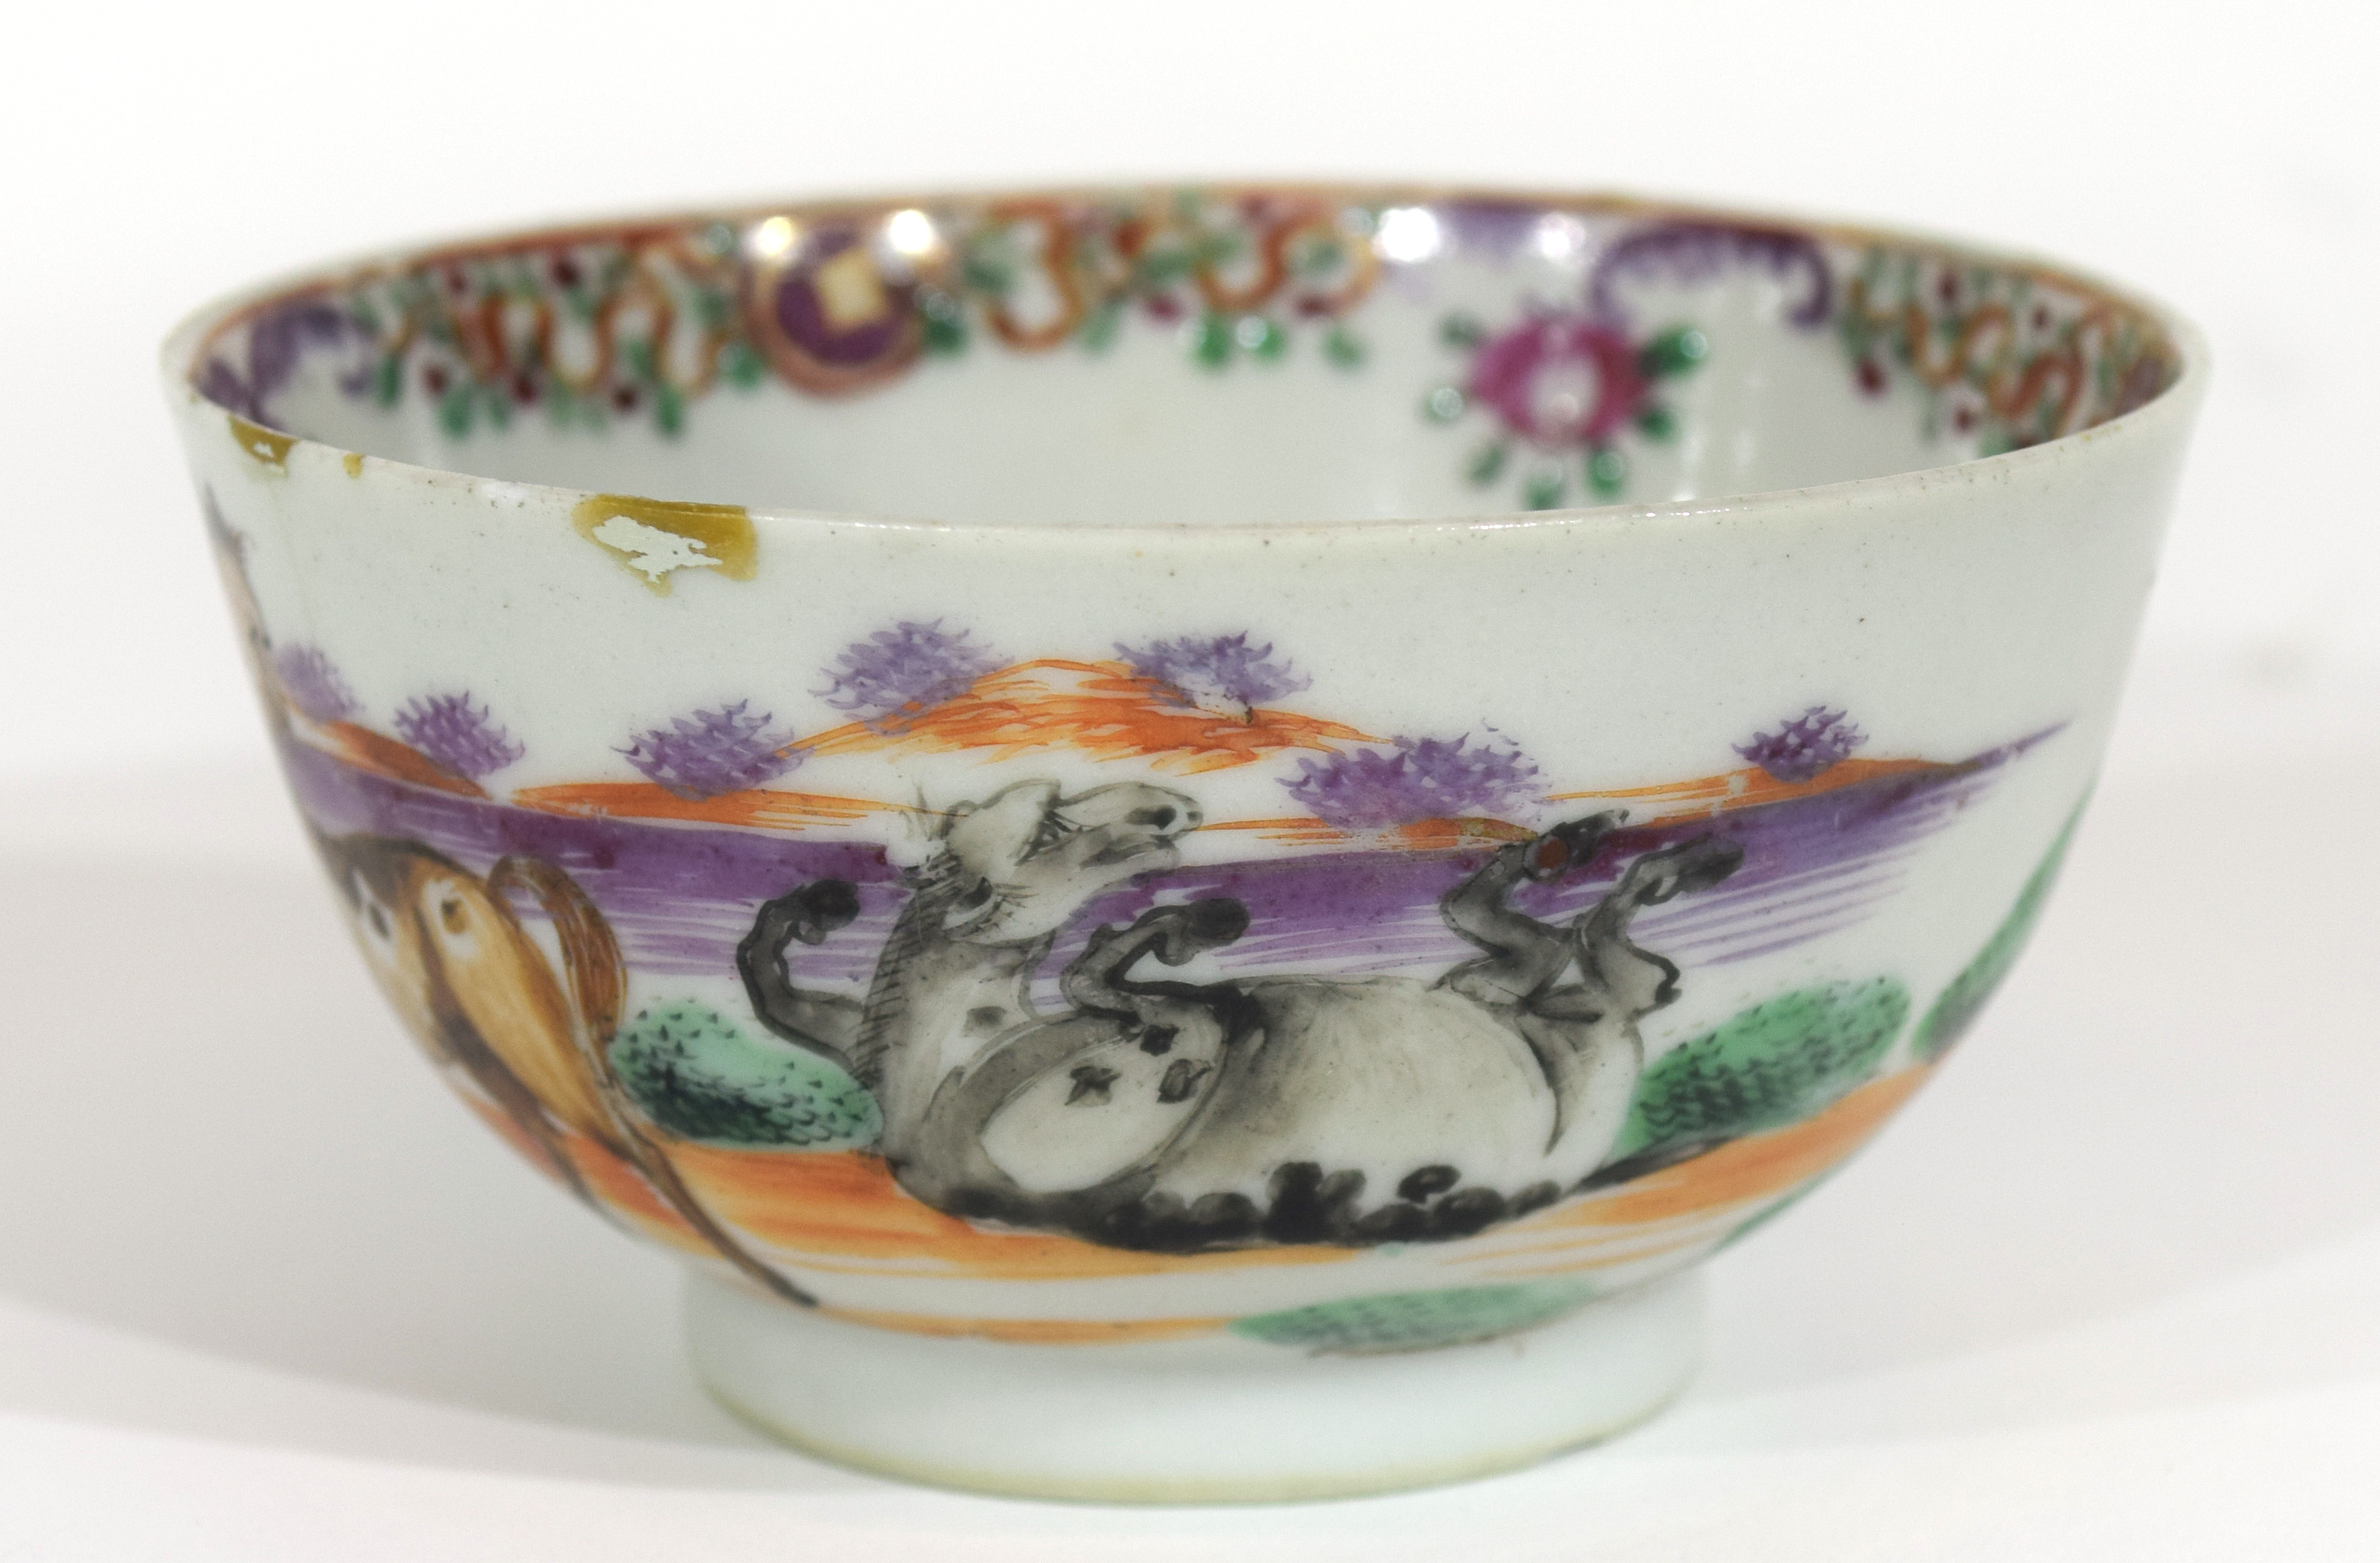 Small Chinese bowl, 18th century - Image 2 of 13